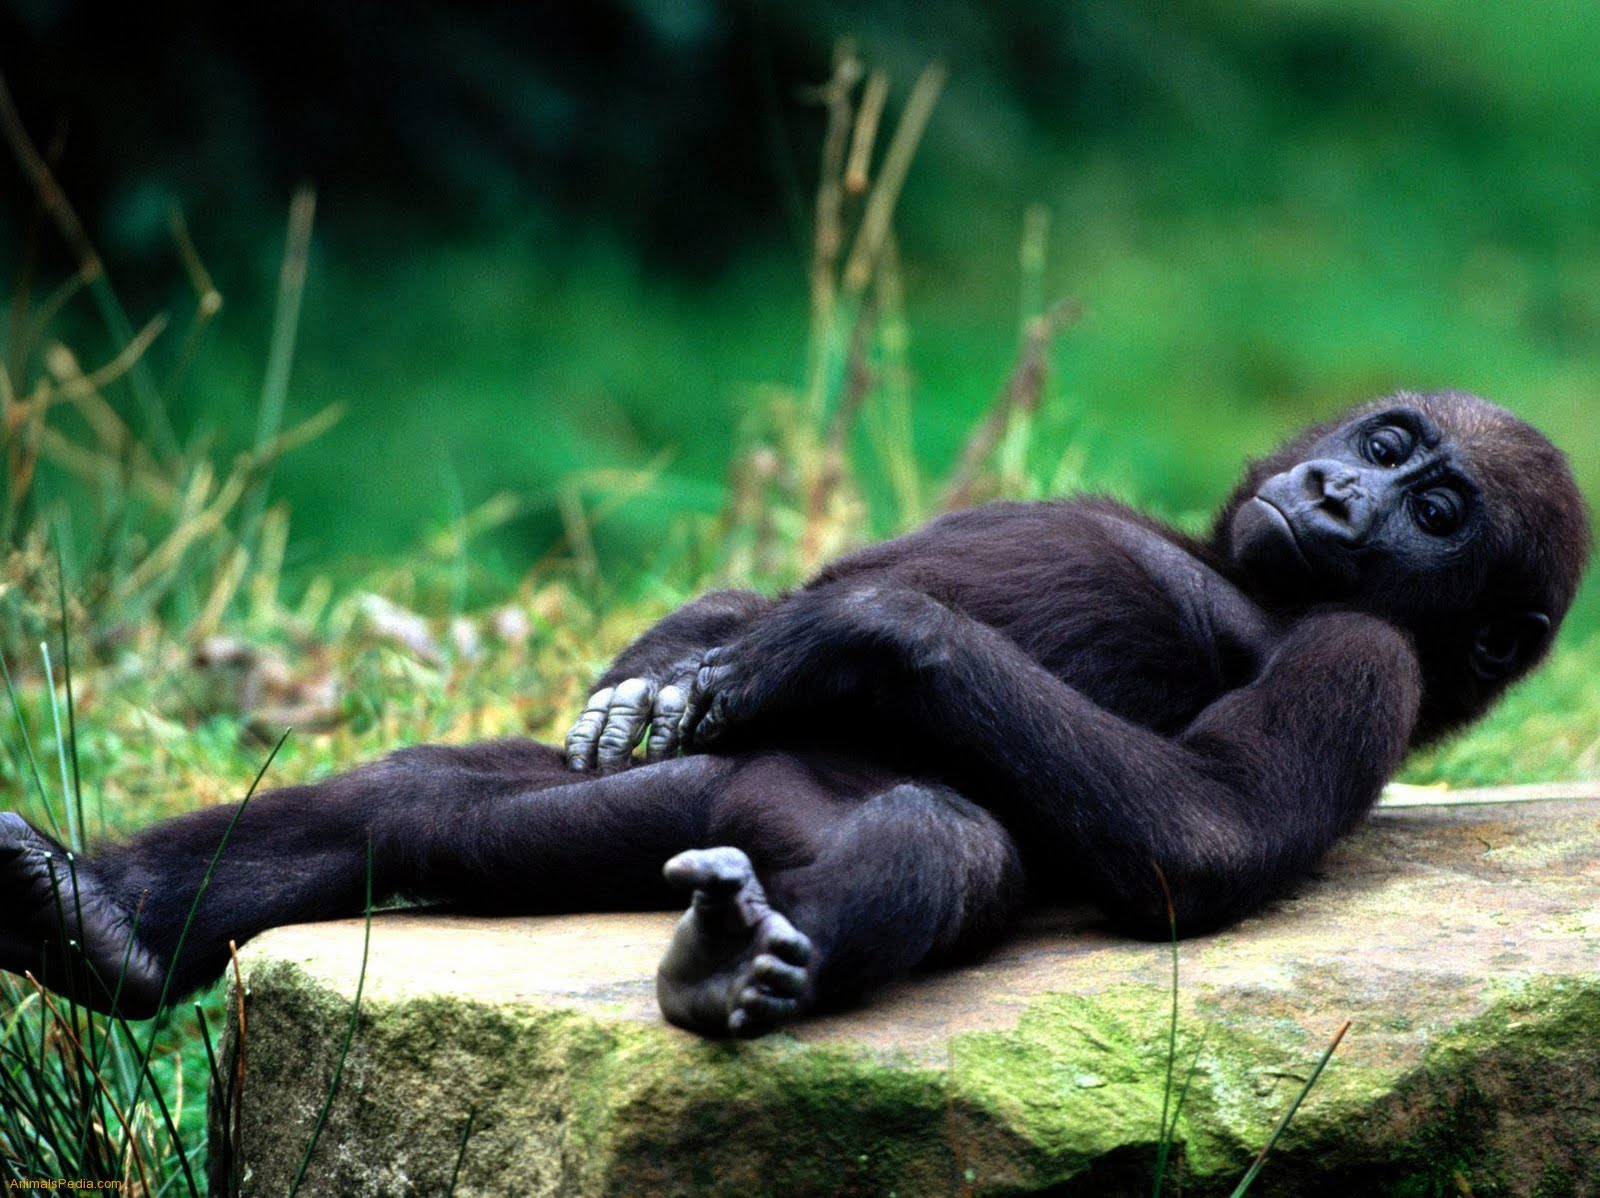 Very Sweet and Cute Animals Funny Gorilla wallpaper 1600x1198